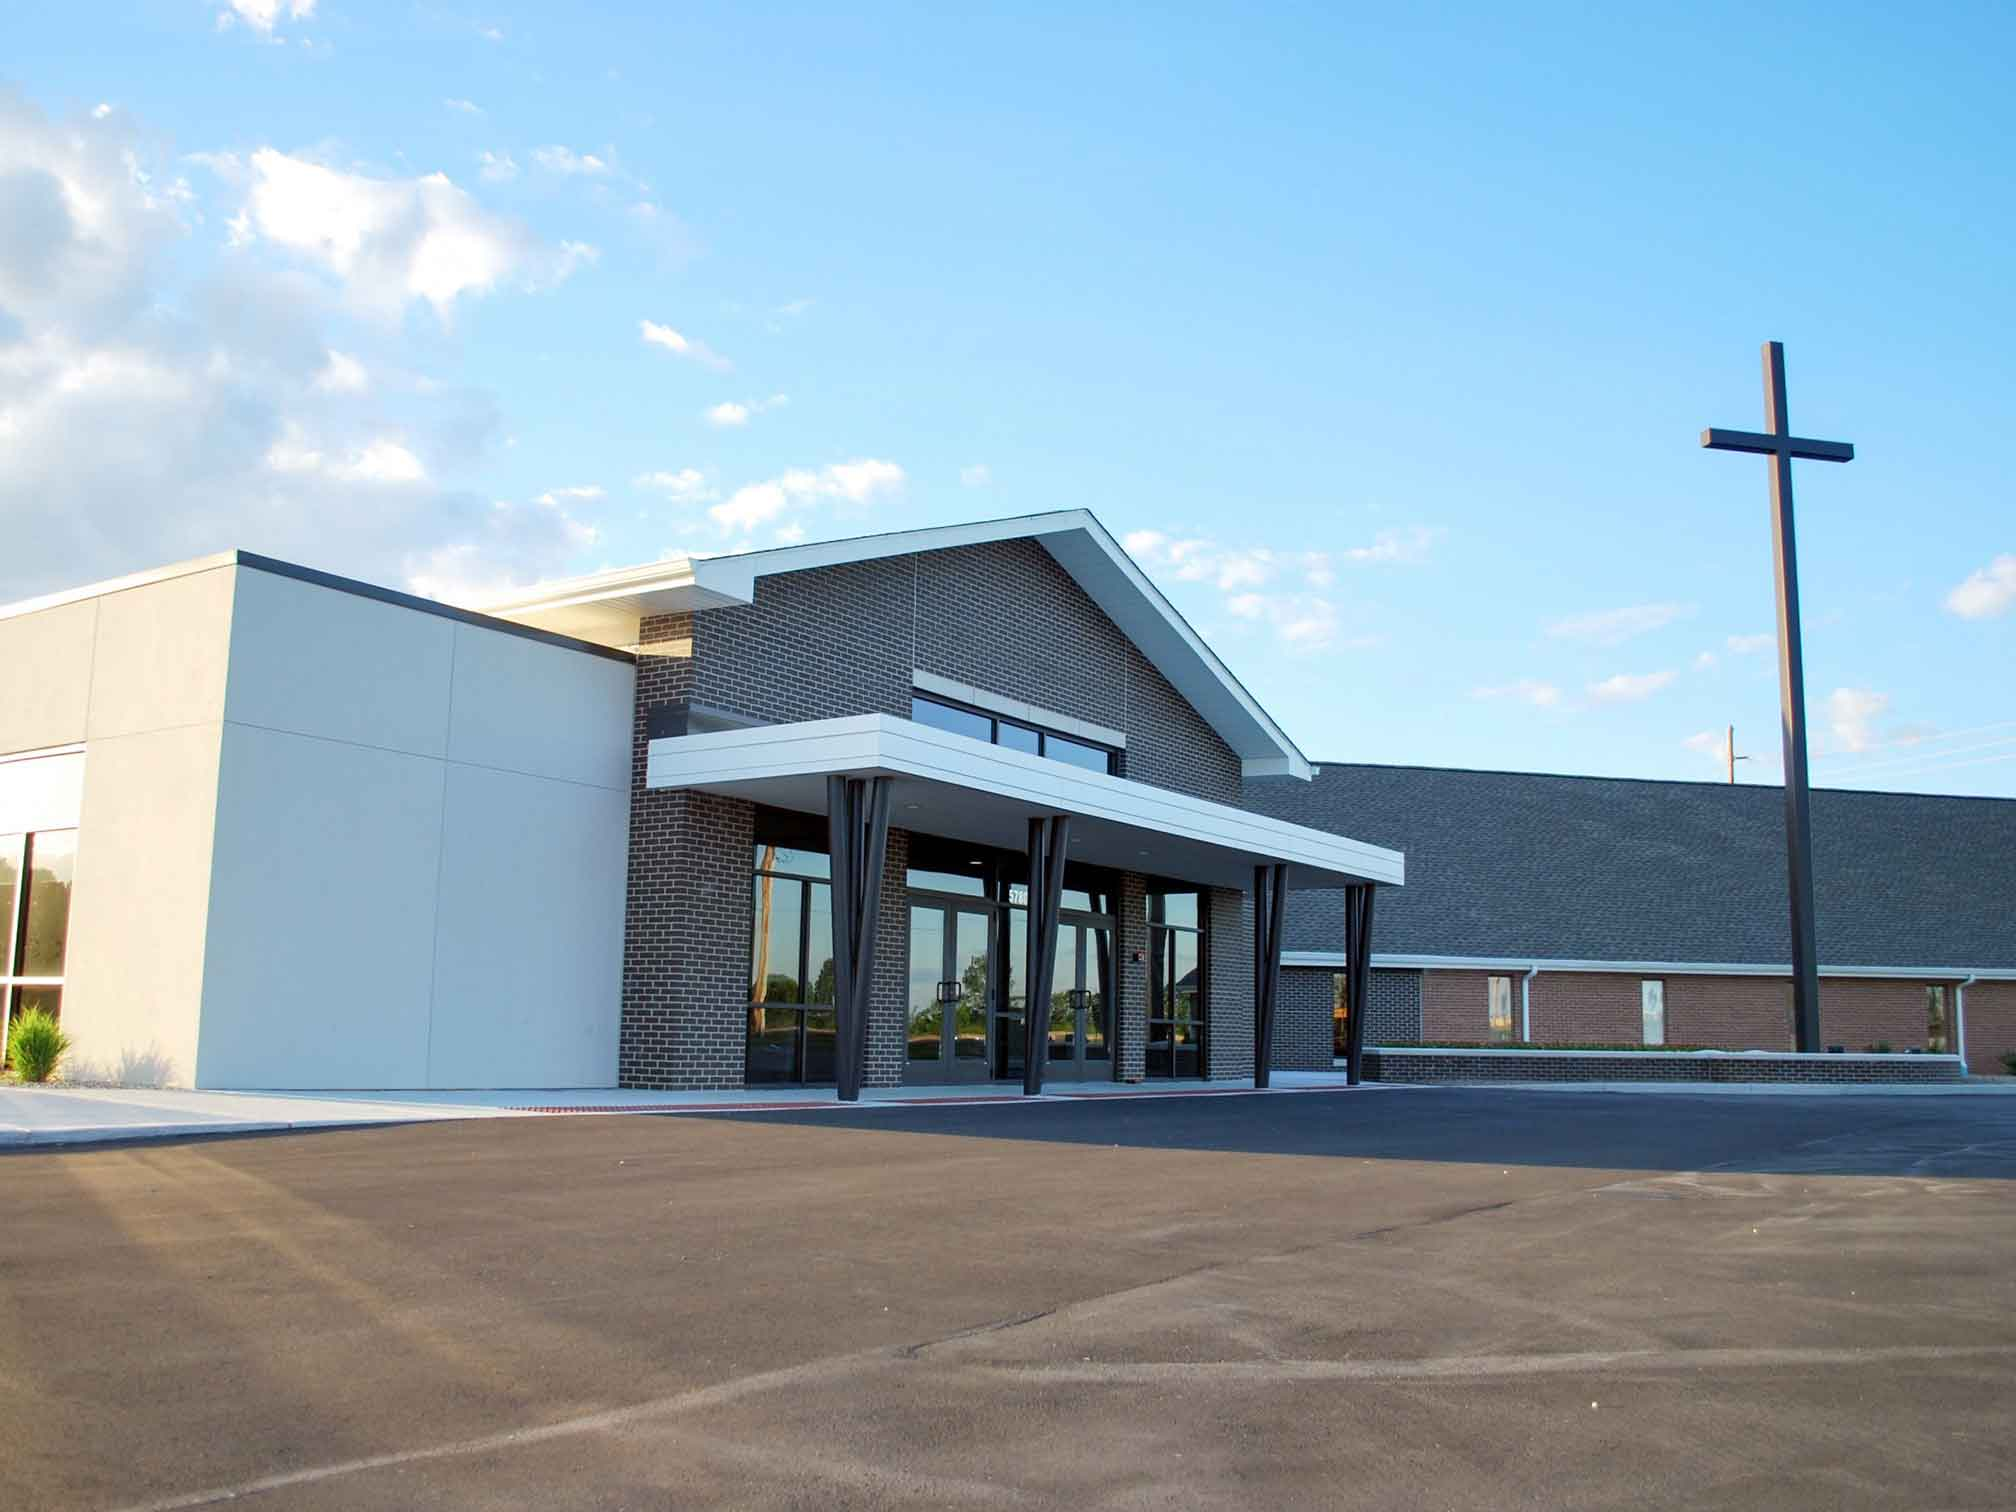 Outside of the offices for counseling with a ThrivePointe therapist at New Hope Christian Church. ThrivePointe Whitestown, IN 46075